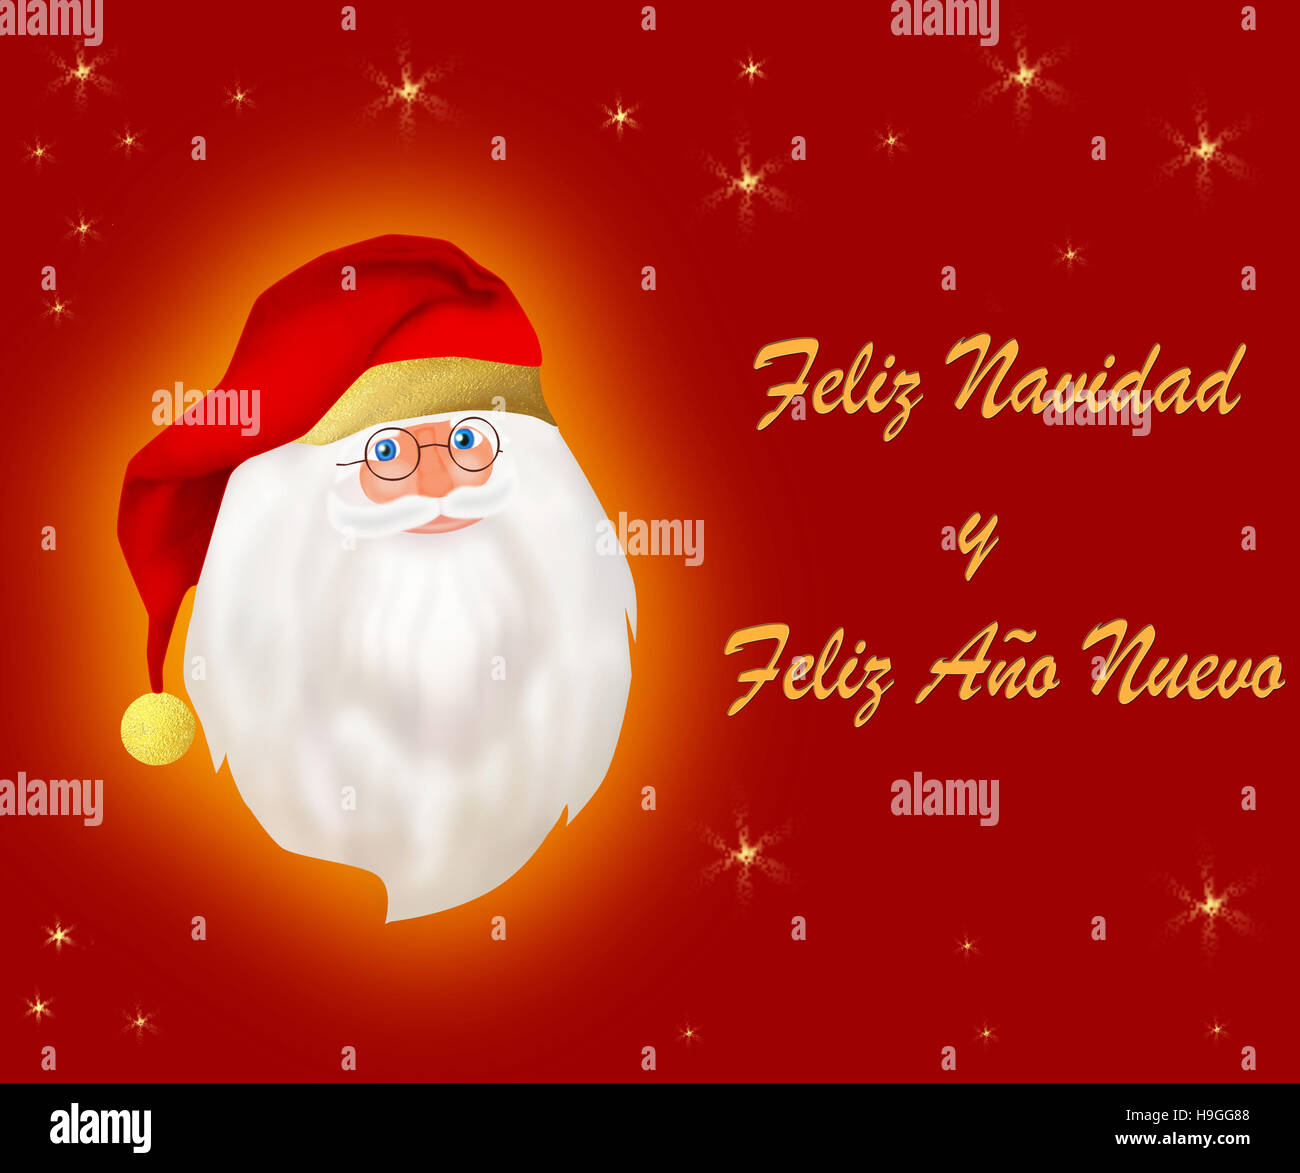 Merry Christmas and a Happy New Year spanish card Stock Photo ...